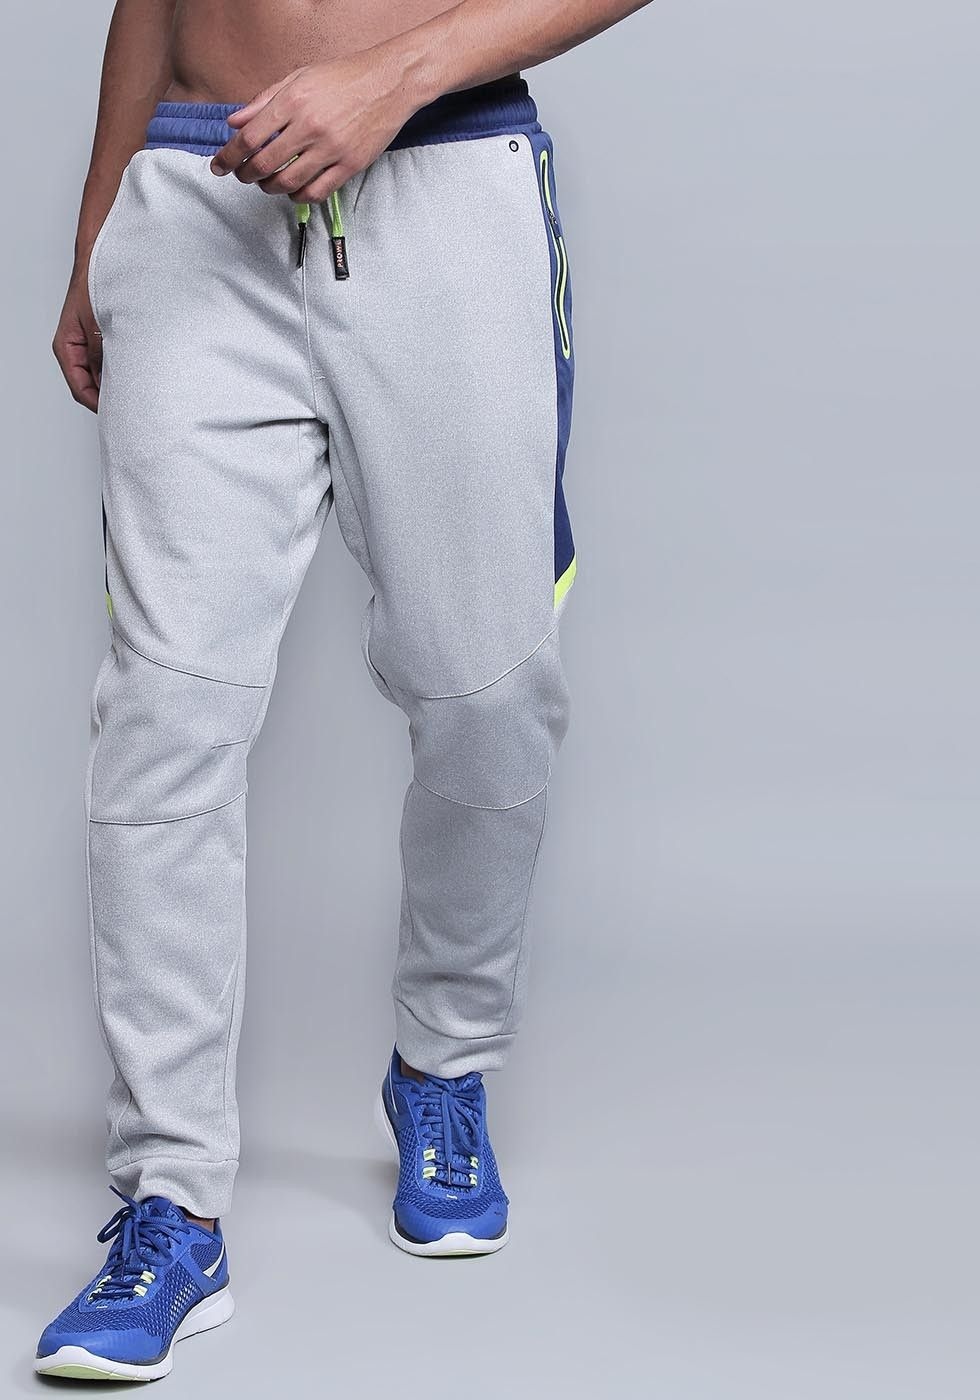 5606dda12ebfc SHIFT WORKOUT & TRAINING ACTIVEWEAR JOGGERS BY PROWL ₹1,999.00 ...